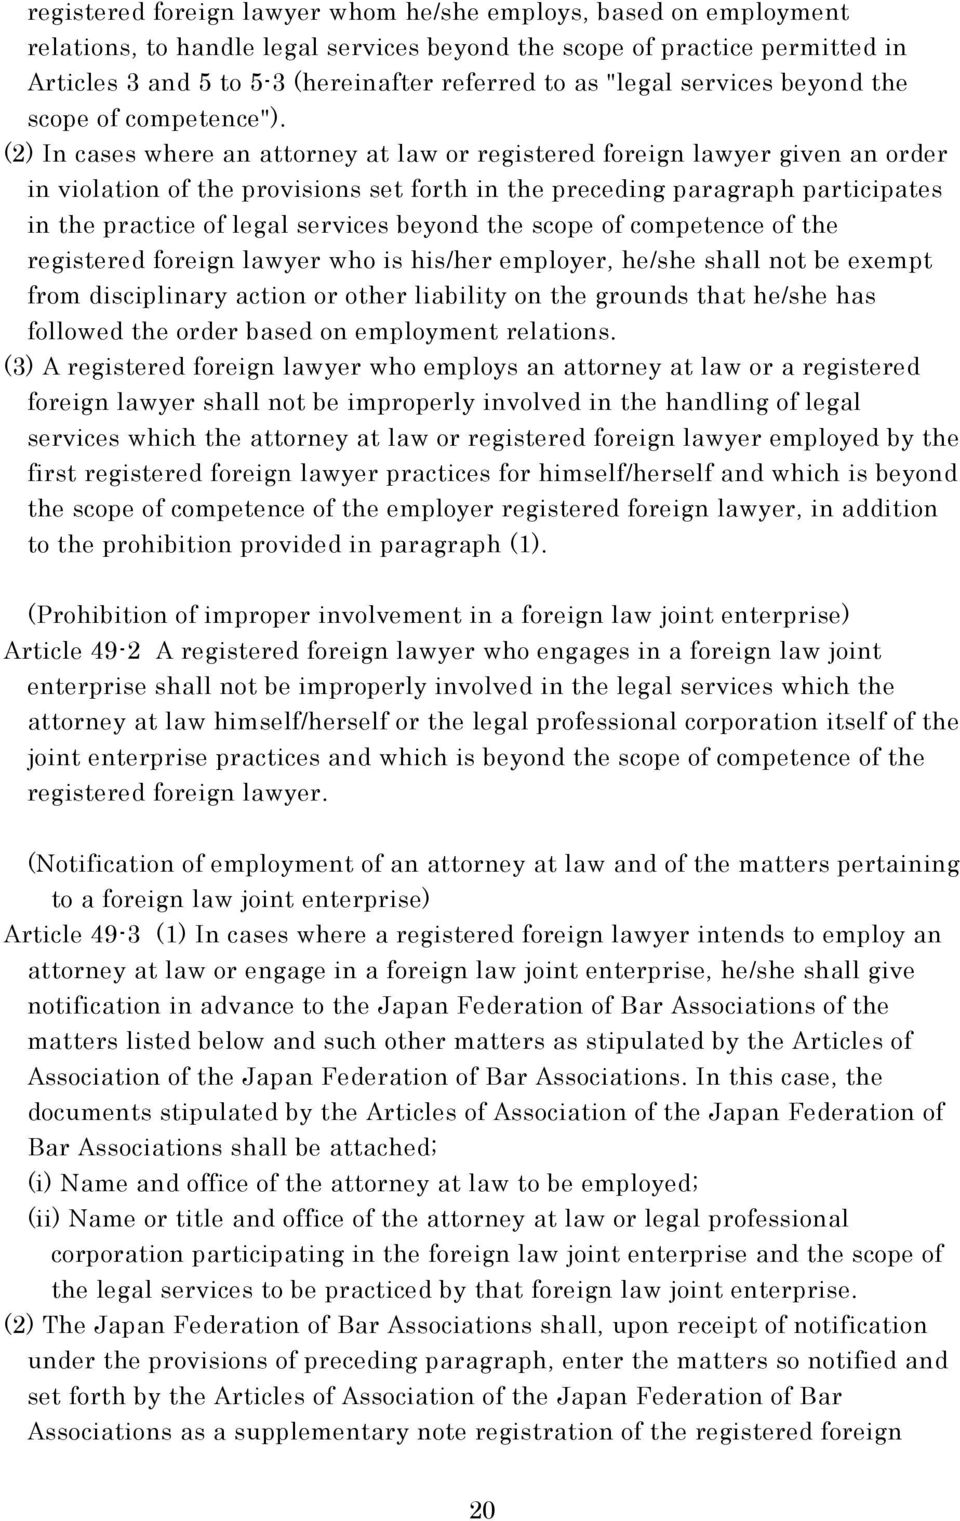 (2) In cases where an attorney at law or registered foreign lawyer given an order in violation of the provisions set forth in the preceding paragraph participates in the practice of legal services